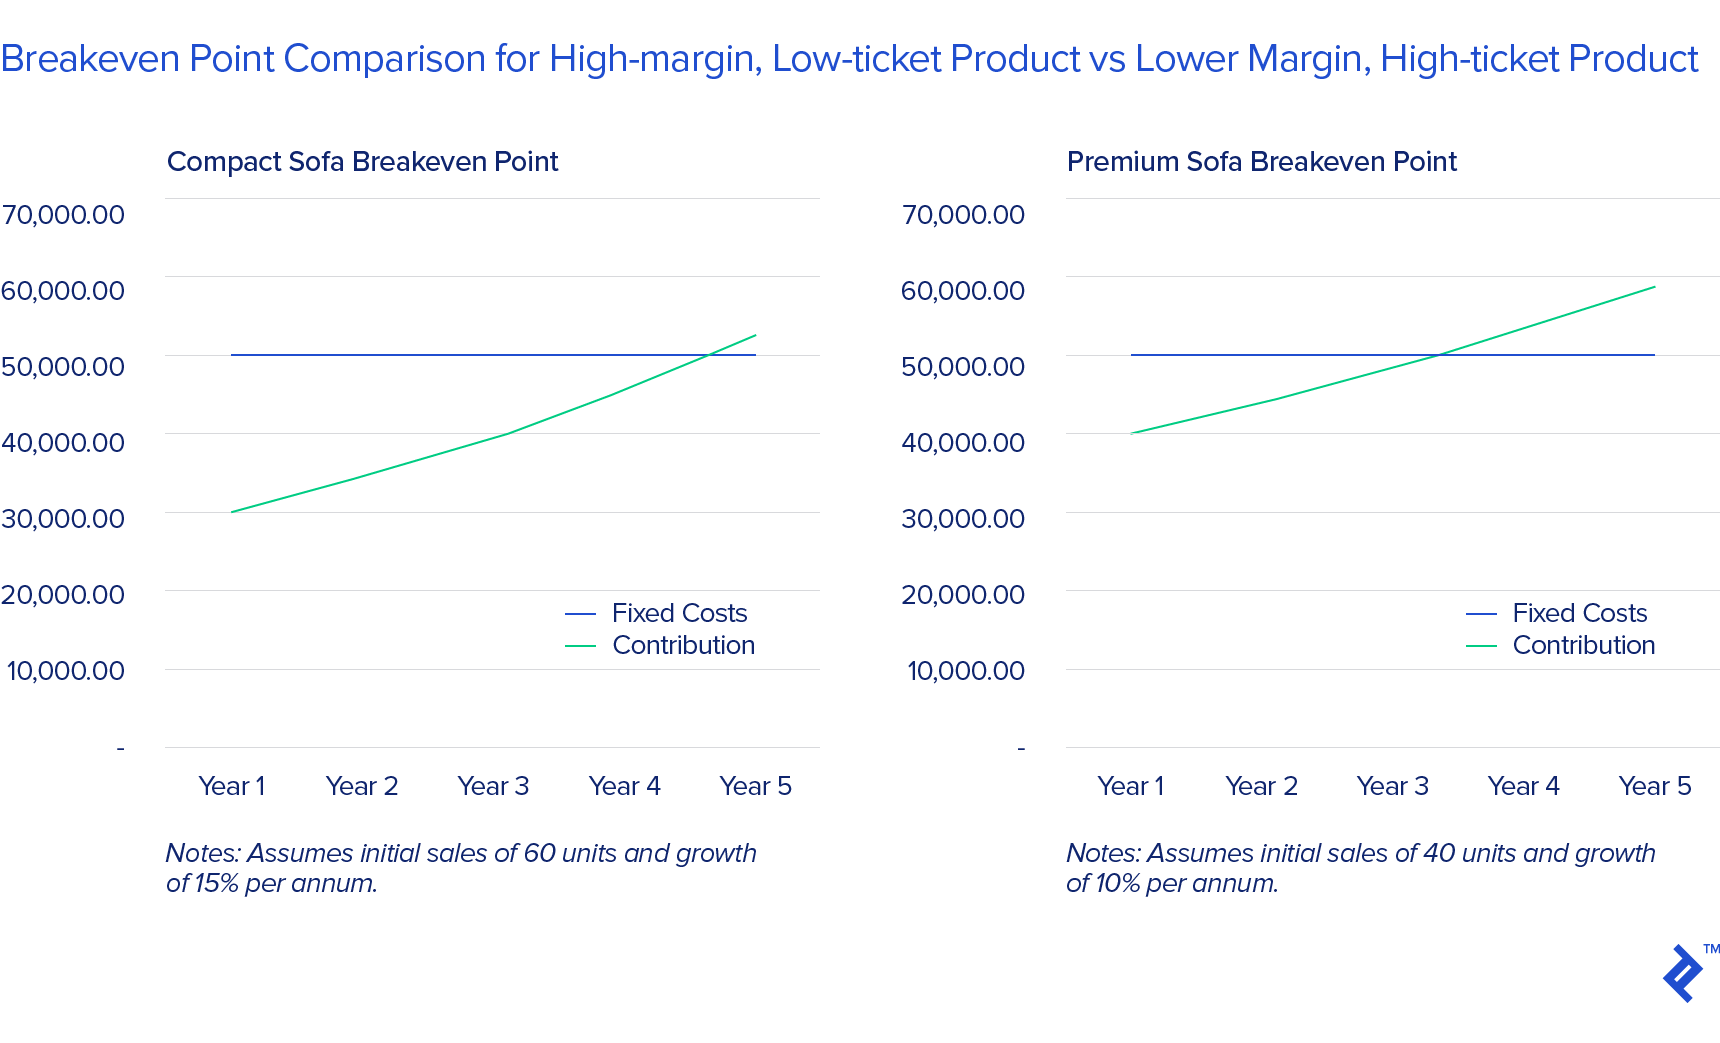 Side by side charts showing the breakeven point comparison for high-margin, low ticket products versus lower-margin, high ticket products